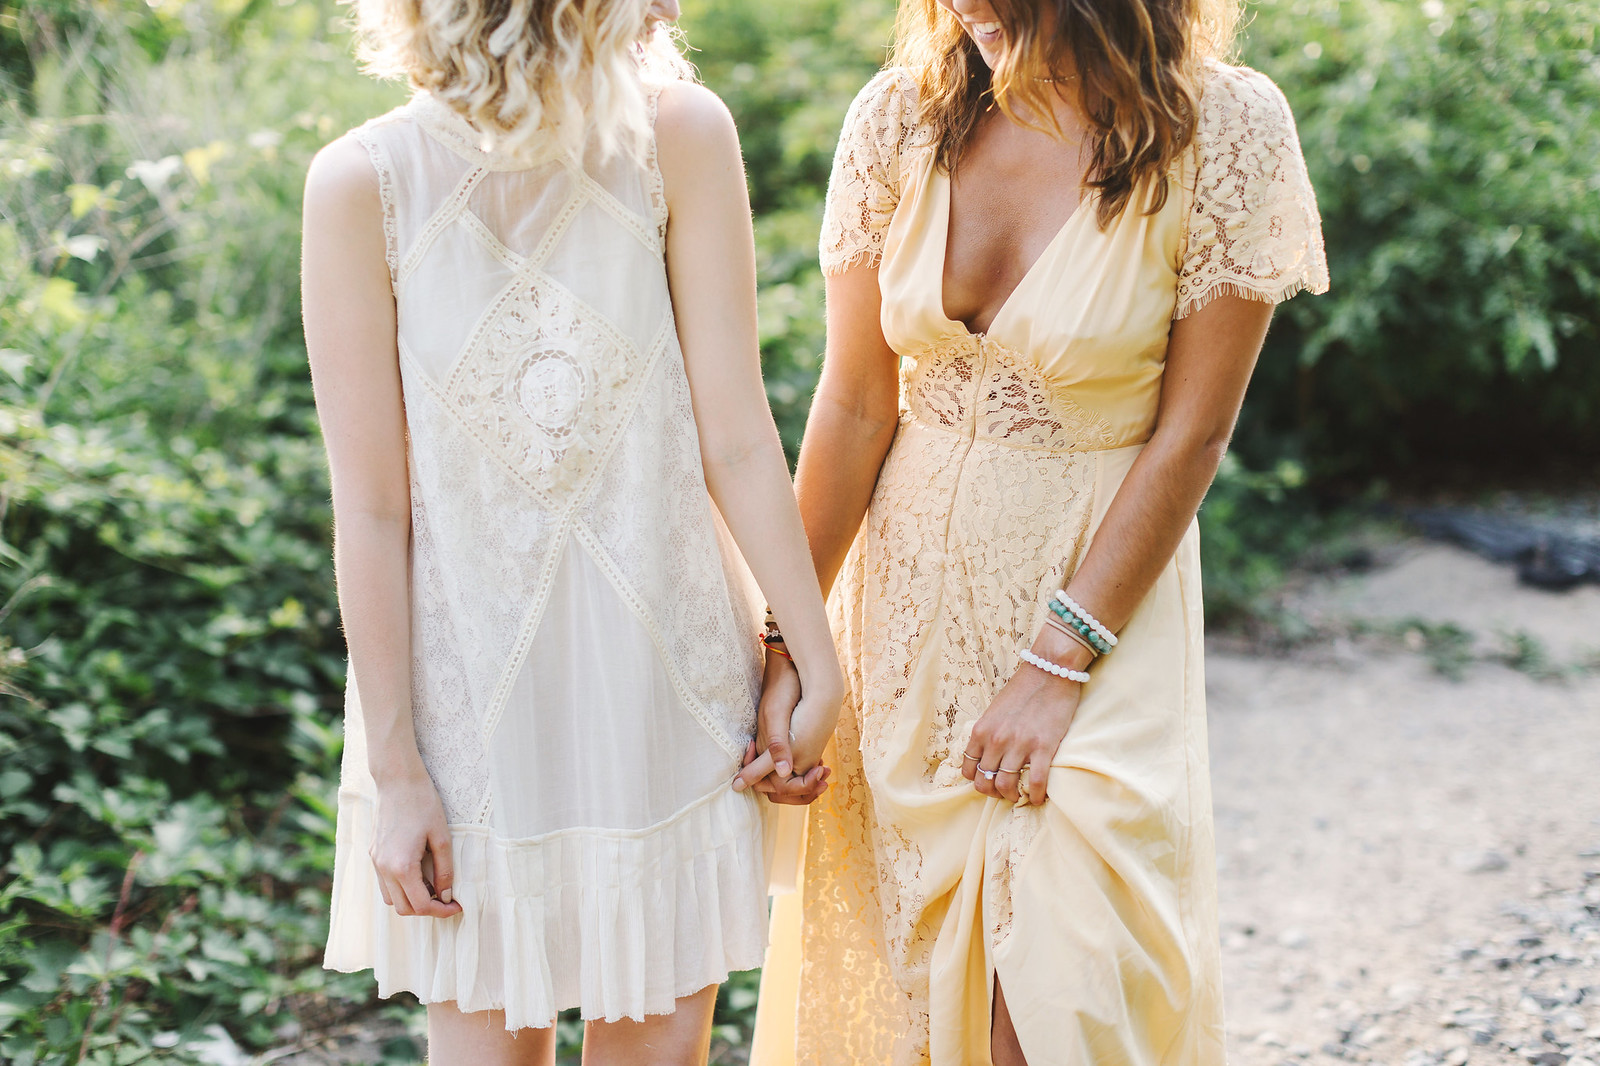 Free People Lace Dresses // Photo for Free People by Lena Mirisola on juliettelaura.blogspot.com